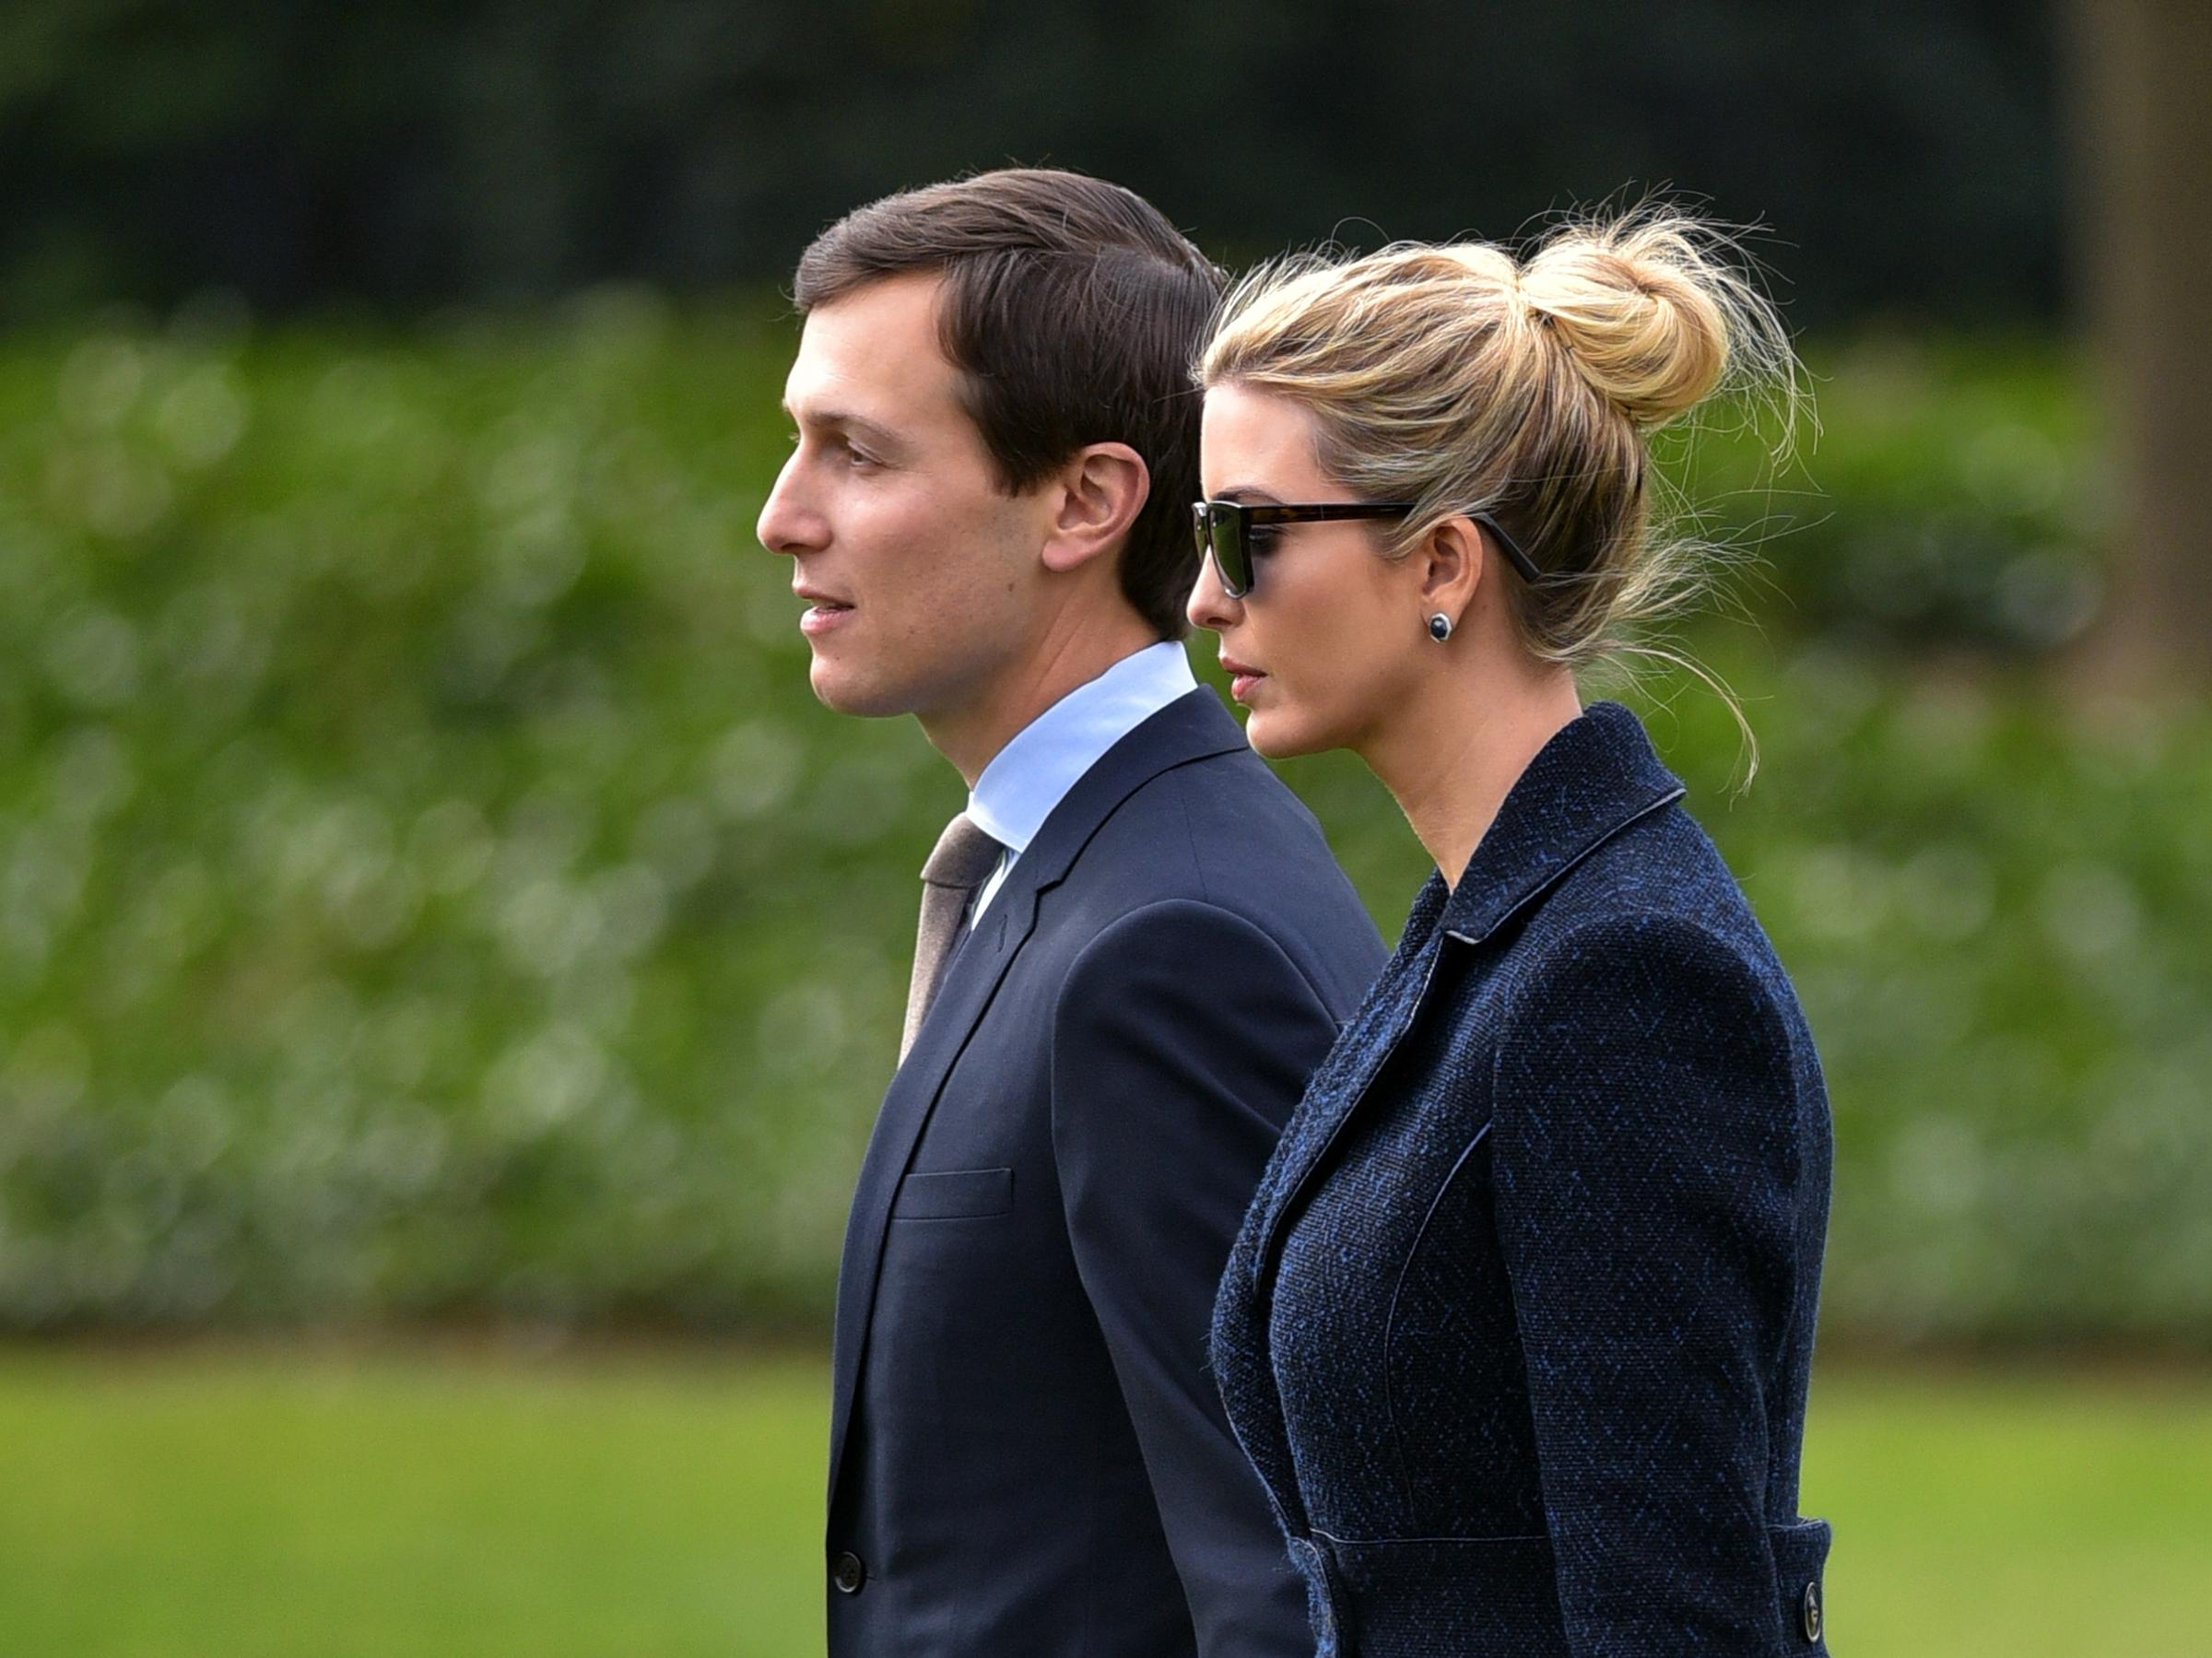 White House releases financial disclosures for senior officials including Kushner, Bannon, Conway